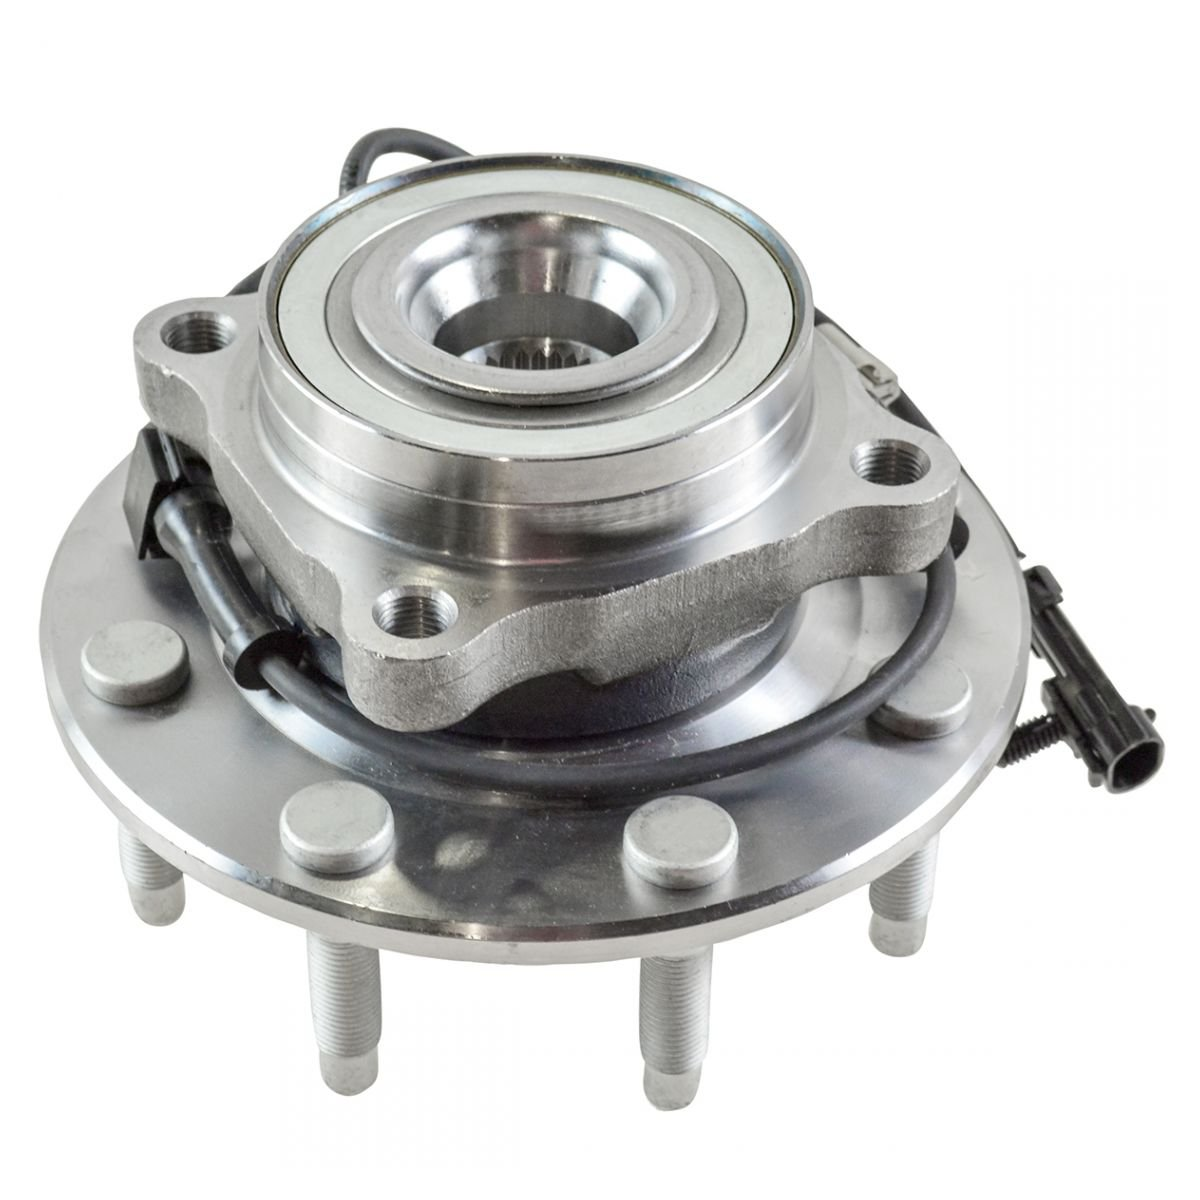 ABS Front Wheel Hub & Bearing Assembly for Chevy GMC Pickup Truck 8 Lug